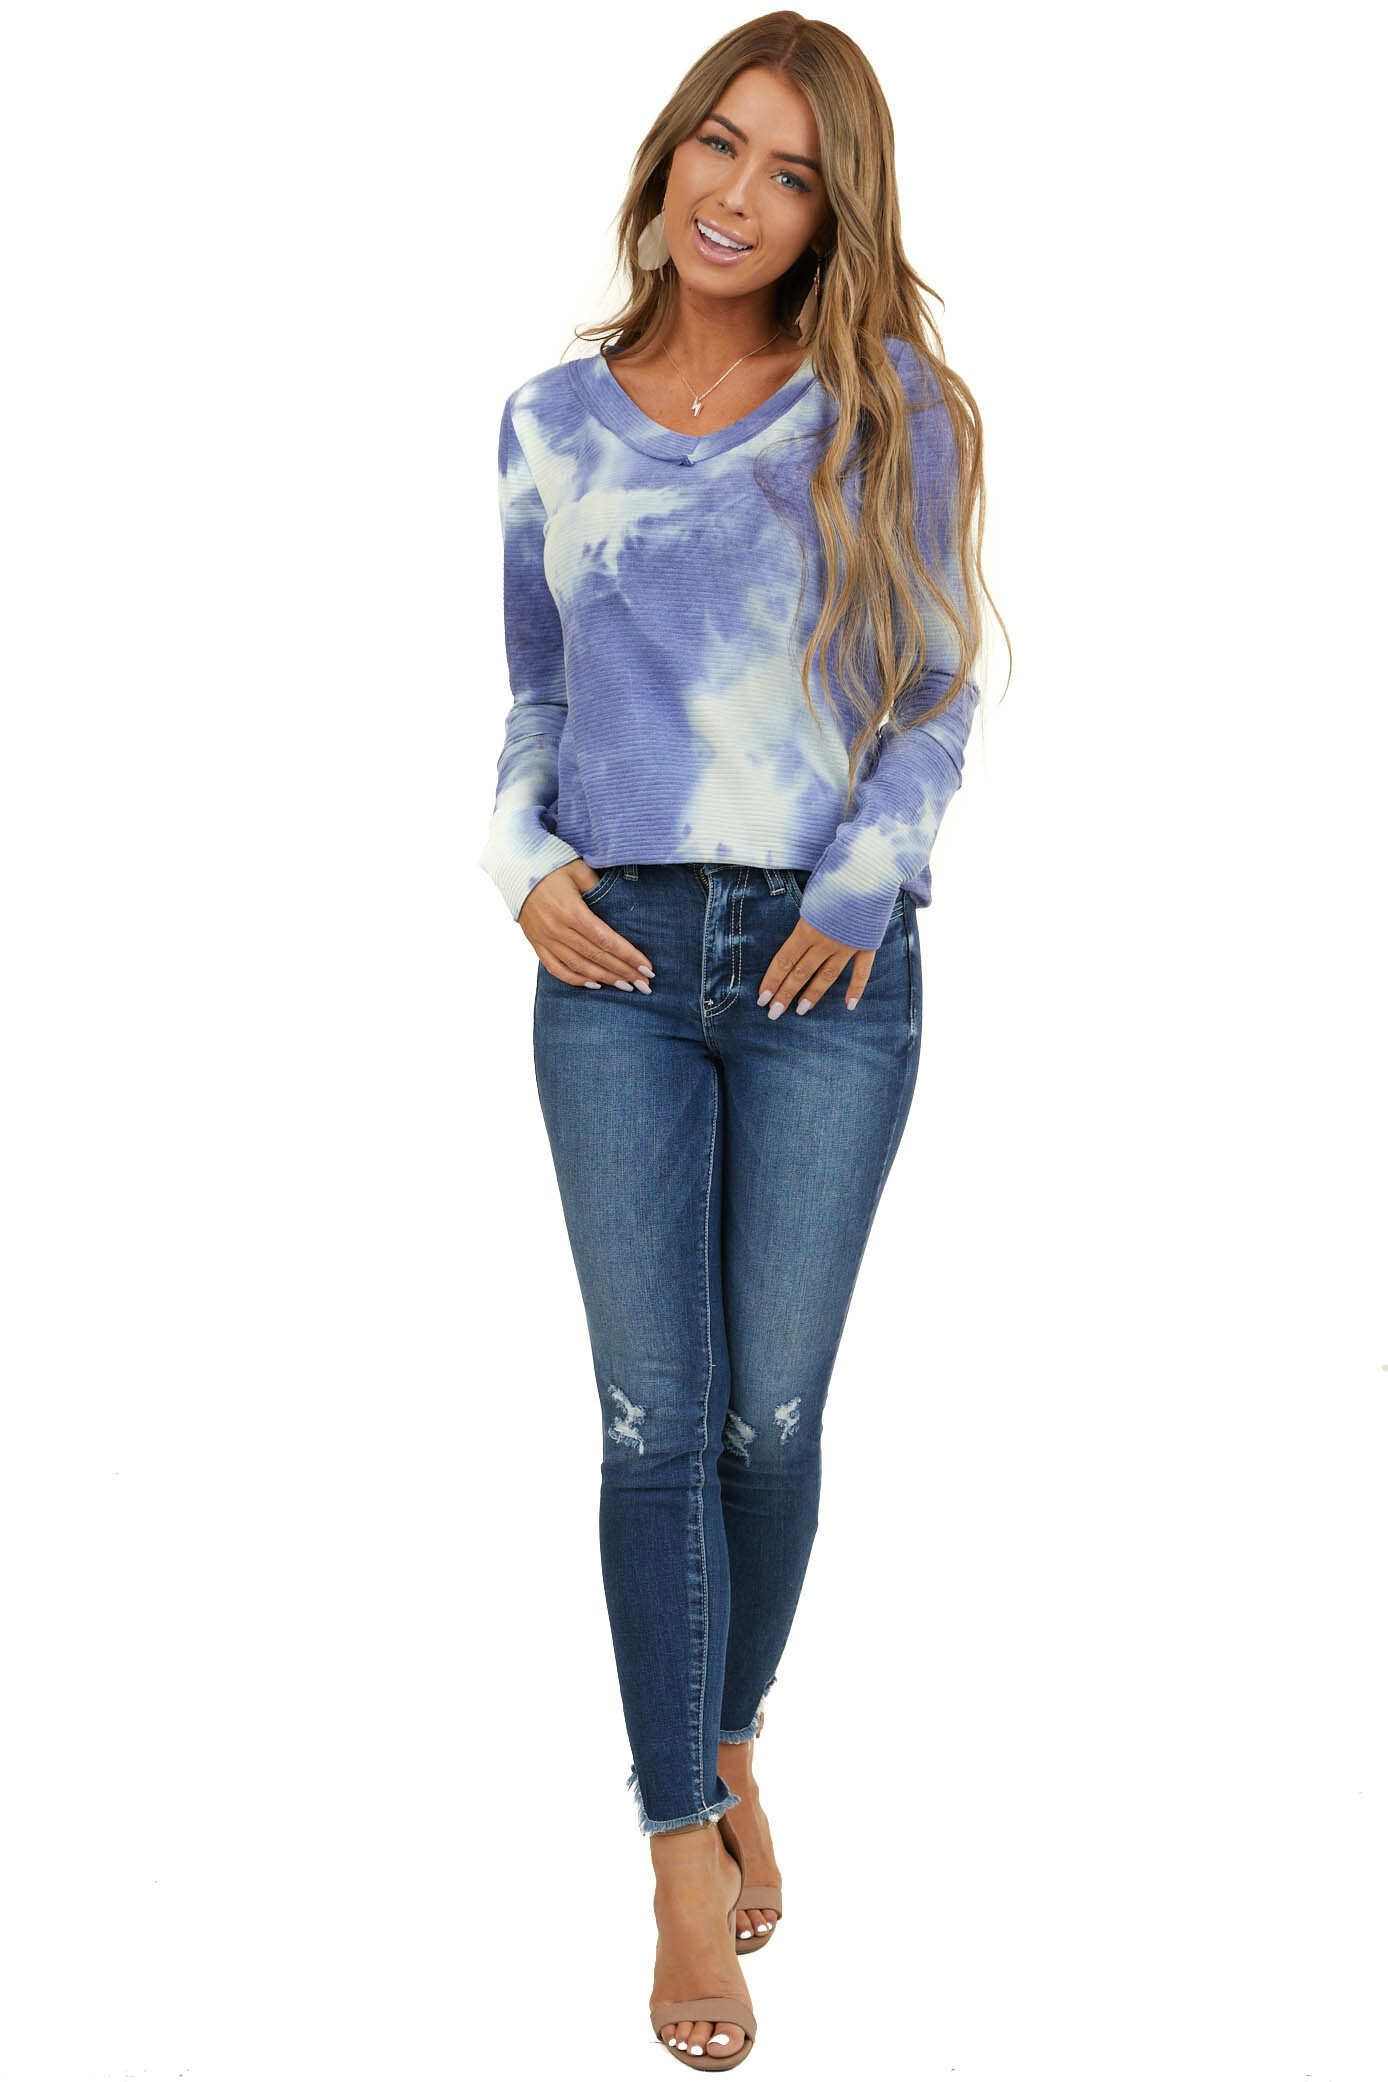 Periwinkle Tie Dye Ribbed Top with Long Fitted Sleeves